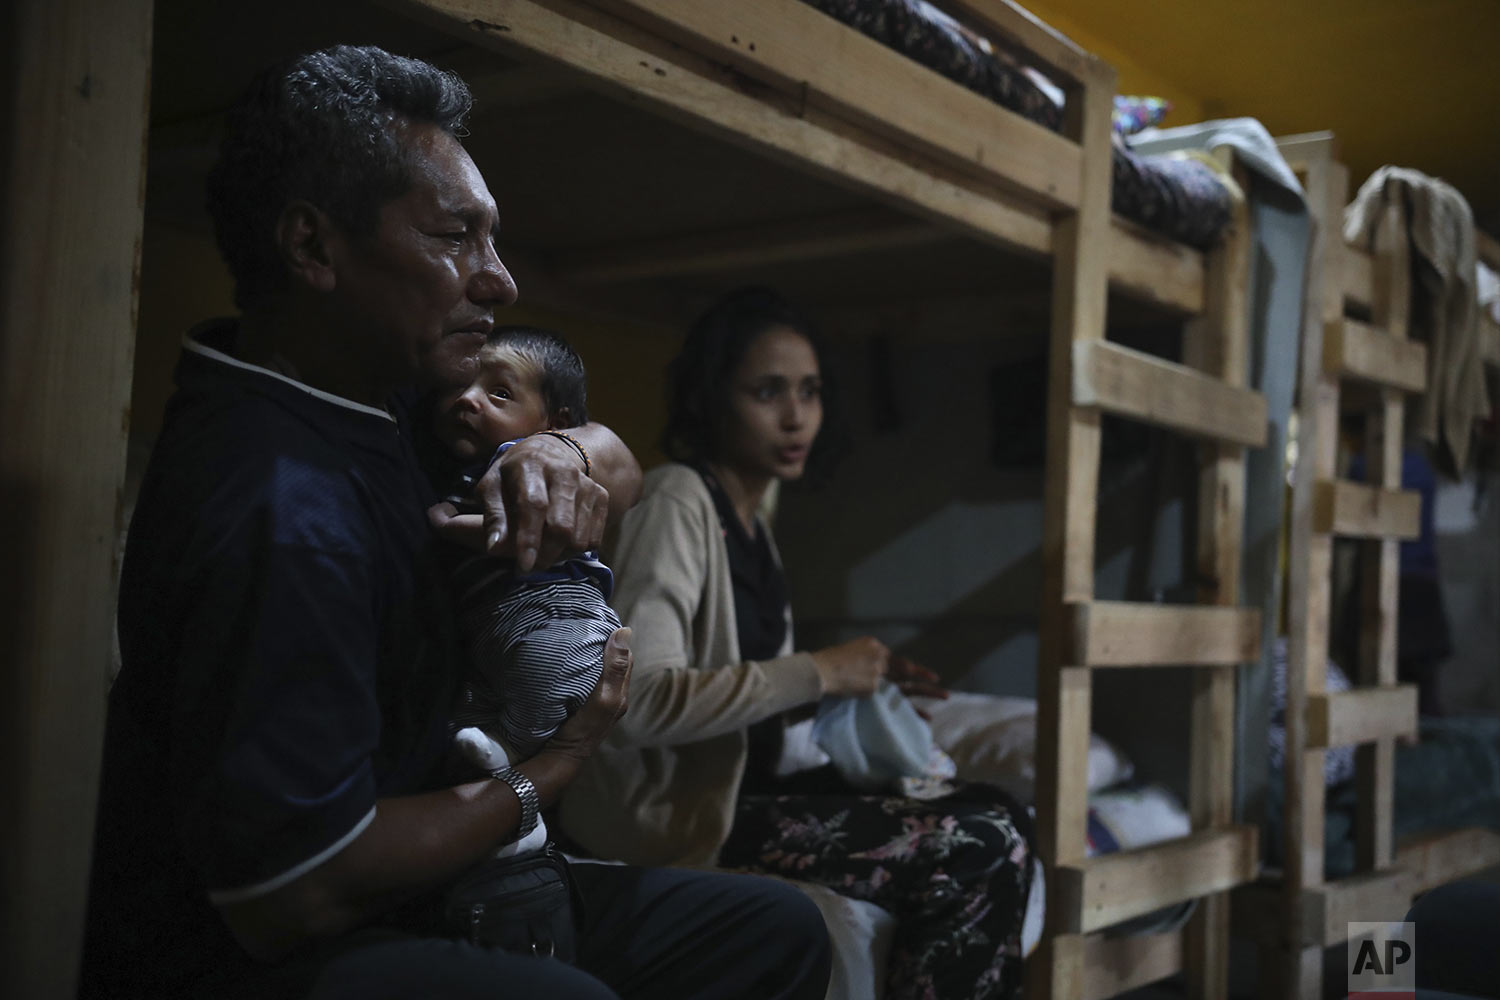 In this June 15, 2019 photo, Manuel Henriquez holds his grandson Alexander, as he sits next to his daughter Milagro de Jesus Henriquez Ayala, on her bed, at the Agape World Mission shelter in Tijuana, Mexico. (AP Photo/ Emilio Espejel)